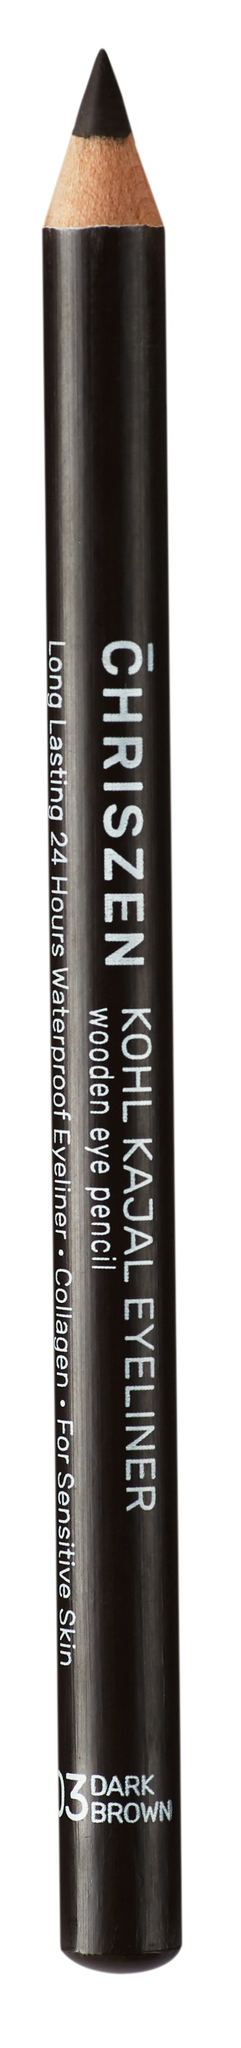 CZ KOHL KAJAL EYELINER WOODEN EYE PENCIL 1.0g